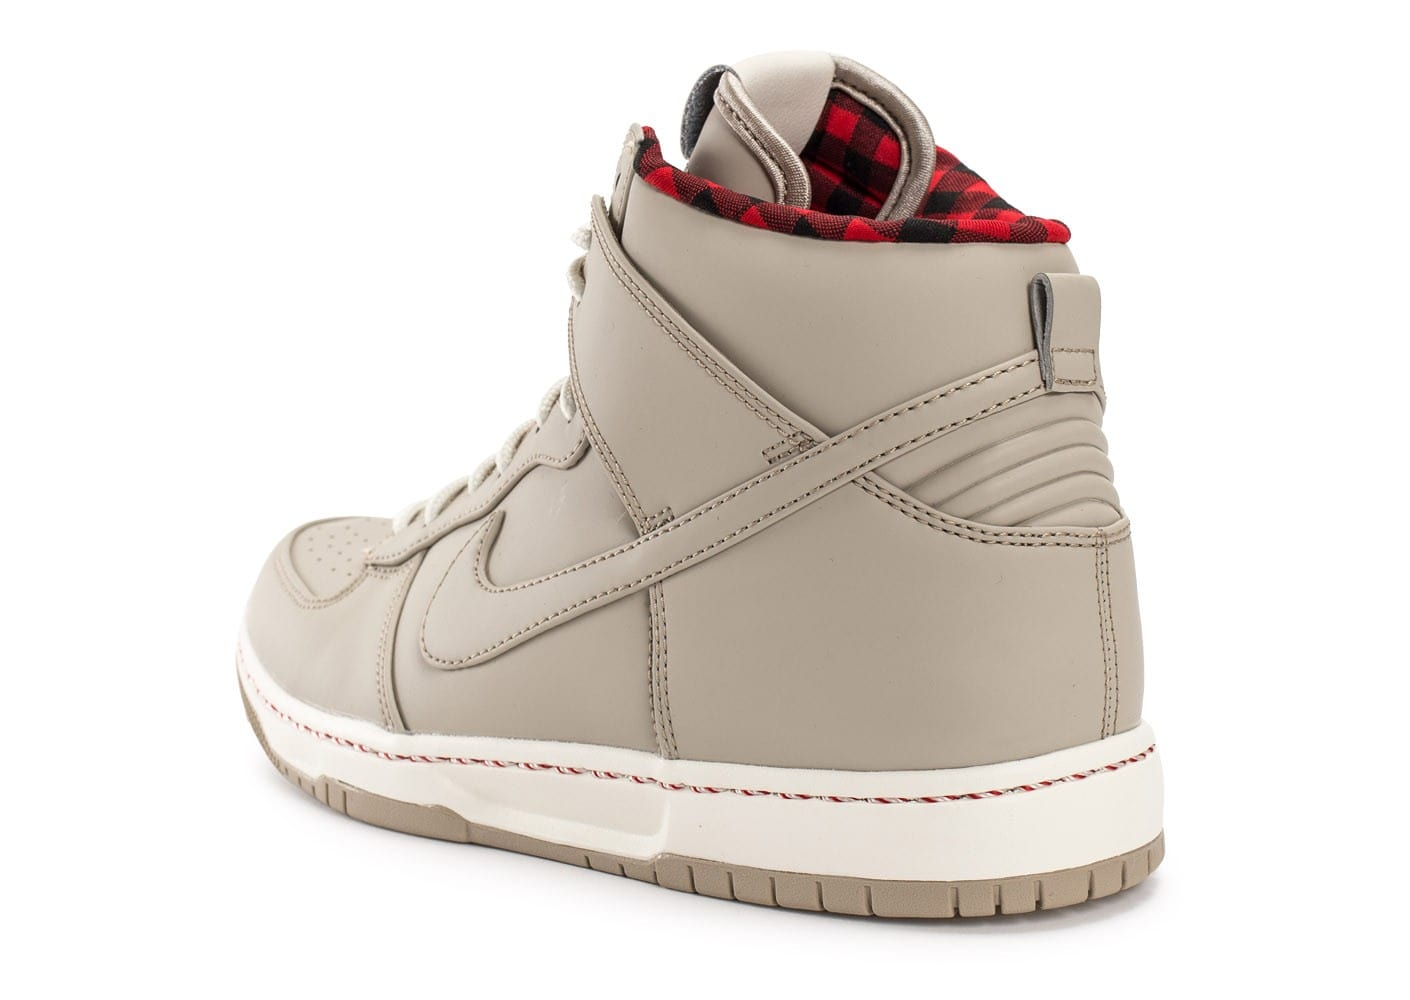 nike dunk high ultra rain beige chaussures homme chausport. Black Bedroom Furniture Sets. Home Design Ideas